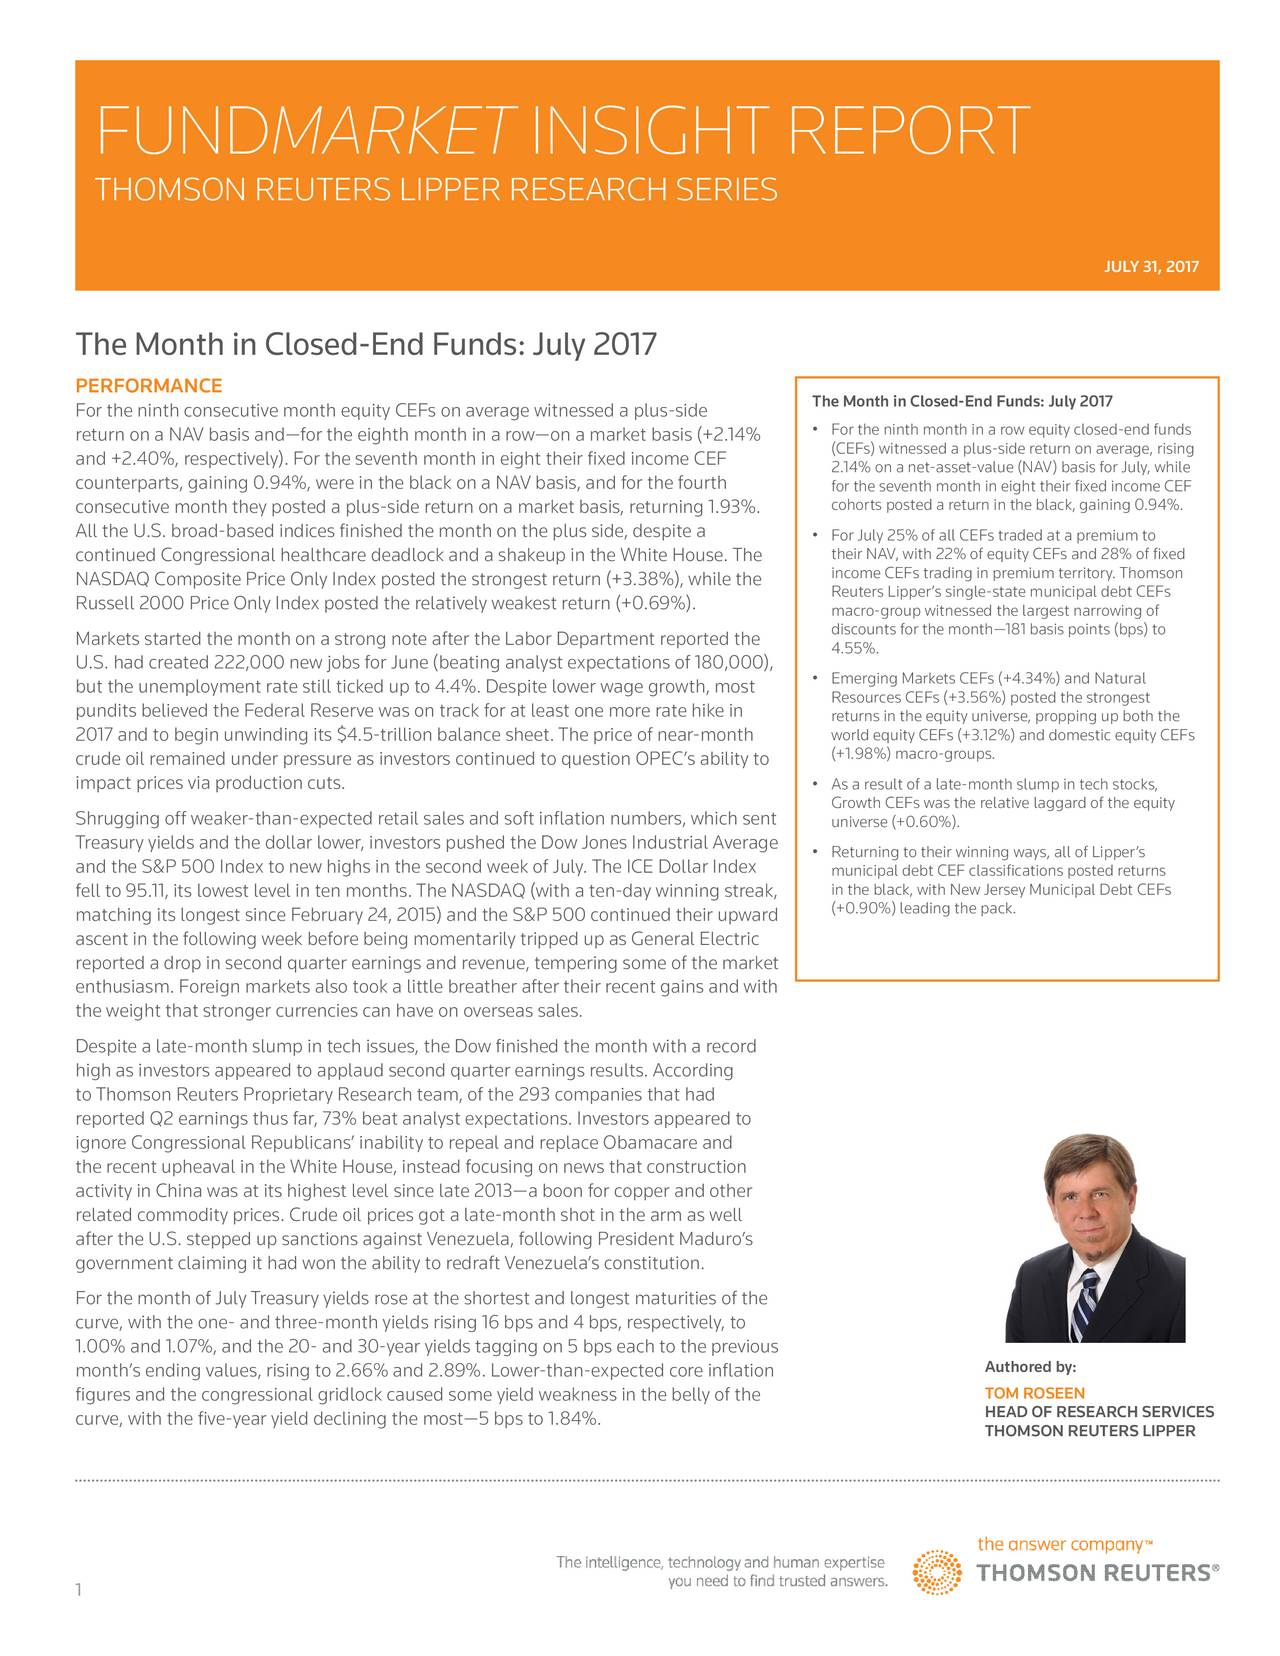 THOMSON REUTERS LIPPER RESEARCH SERIES JULY 31, 2017 The Month in Closed-End Funds: July 2017 PERFORMANCE The Month in Closed-End Funds: July 2017 For the ninth consecutive month equity CEFs on average witnessed a plus-side return on a NAV basis andfor the eighth month in a rowon a market basis (+2.14%  For the ninth month in a row equity closed-end funds and +2.40%, respectively). For the seventh month in eight their fixed income CEF (CEFs) witnessed a plus-side return on average, rising counterparts, gaining 0.94%, were in the black on a NAV basis, and for the fourth 2.14% on a net-asset-value (NAV) basis for July, while cohorts posted a return in the black, gaining 0.94%.F consecutive month they posted a plus-side return on a market basis, returning 1.93%. All the U.S. broad-based indices finished the month on the plus side, despite a  For July 25% of all CEFs traded at a premium to continued Congressional healthcare deadlock and a shakeup in the White House. The their NAV, with 22% of equity CEFs and 28% of fixed NASDAQ Composite Price Only Index posted the strongest return (+3.38%), while the income CEFs trading in premium territory. Thomson Reuters Lippers single-state municipal debt CEFs Russell 2000 Price Only Index posted the relatively weakest return (+0.69%). macro-group witnessed the largest narrowing of Markets started the month on a strong note after the Labor Department reported the discounts for the month181 basis points (bps) to 4.55%. U.S. had created 222,000 new jobs for June (beating analyst expectations of 180,000),  Emerging Markets CEFs (+4.34%) and Natural but the unemployment rate still ticked up to 4.4%. Despite lower wage growth, most Resources CEFs (+3.56%) posted the strongest pundits believed the Federal Reserve was on track for at least one more rate hike in returns in the equity universe, propping up both the 2017 and to begin unwinding its $4.5-trillion balance sheet. The price of near-month world equity CEFs (+3.12%) and domestic eq